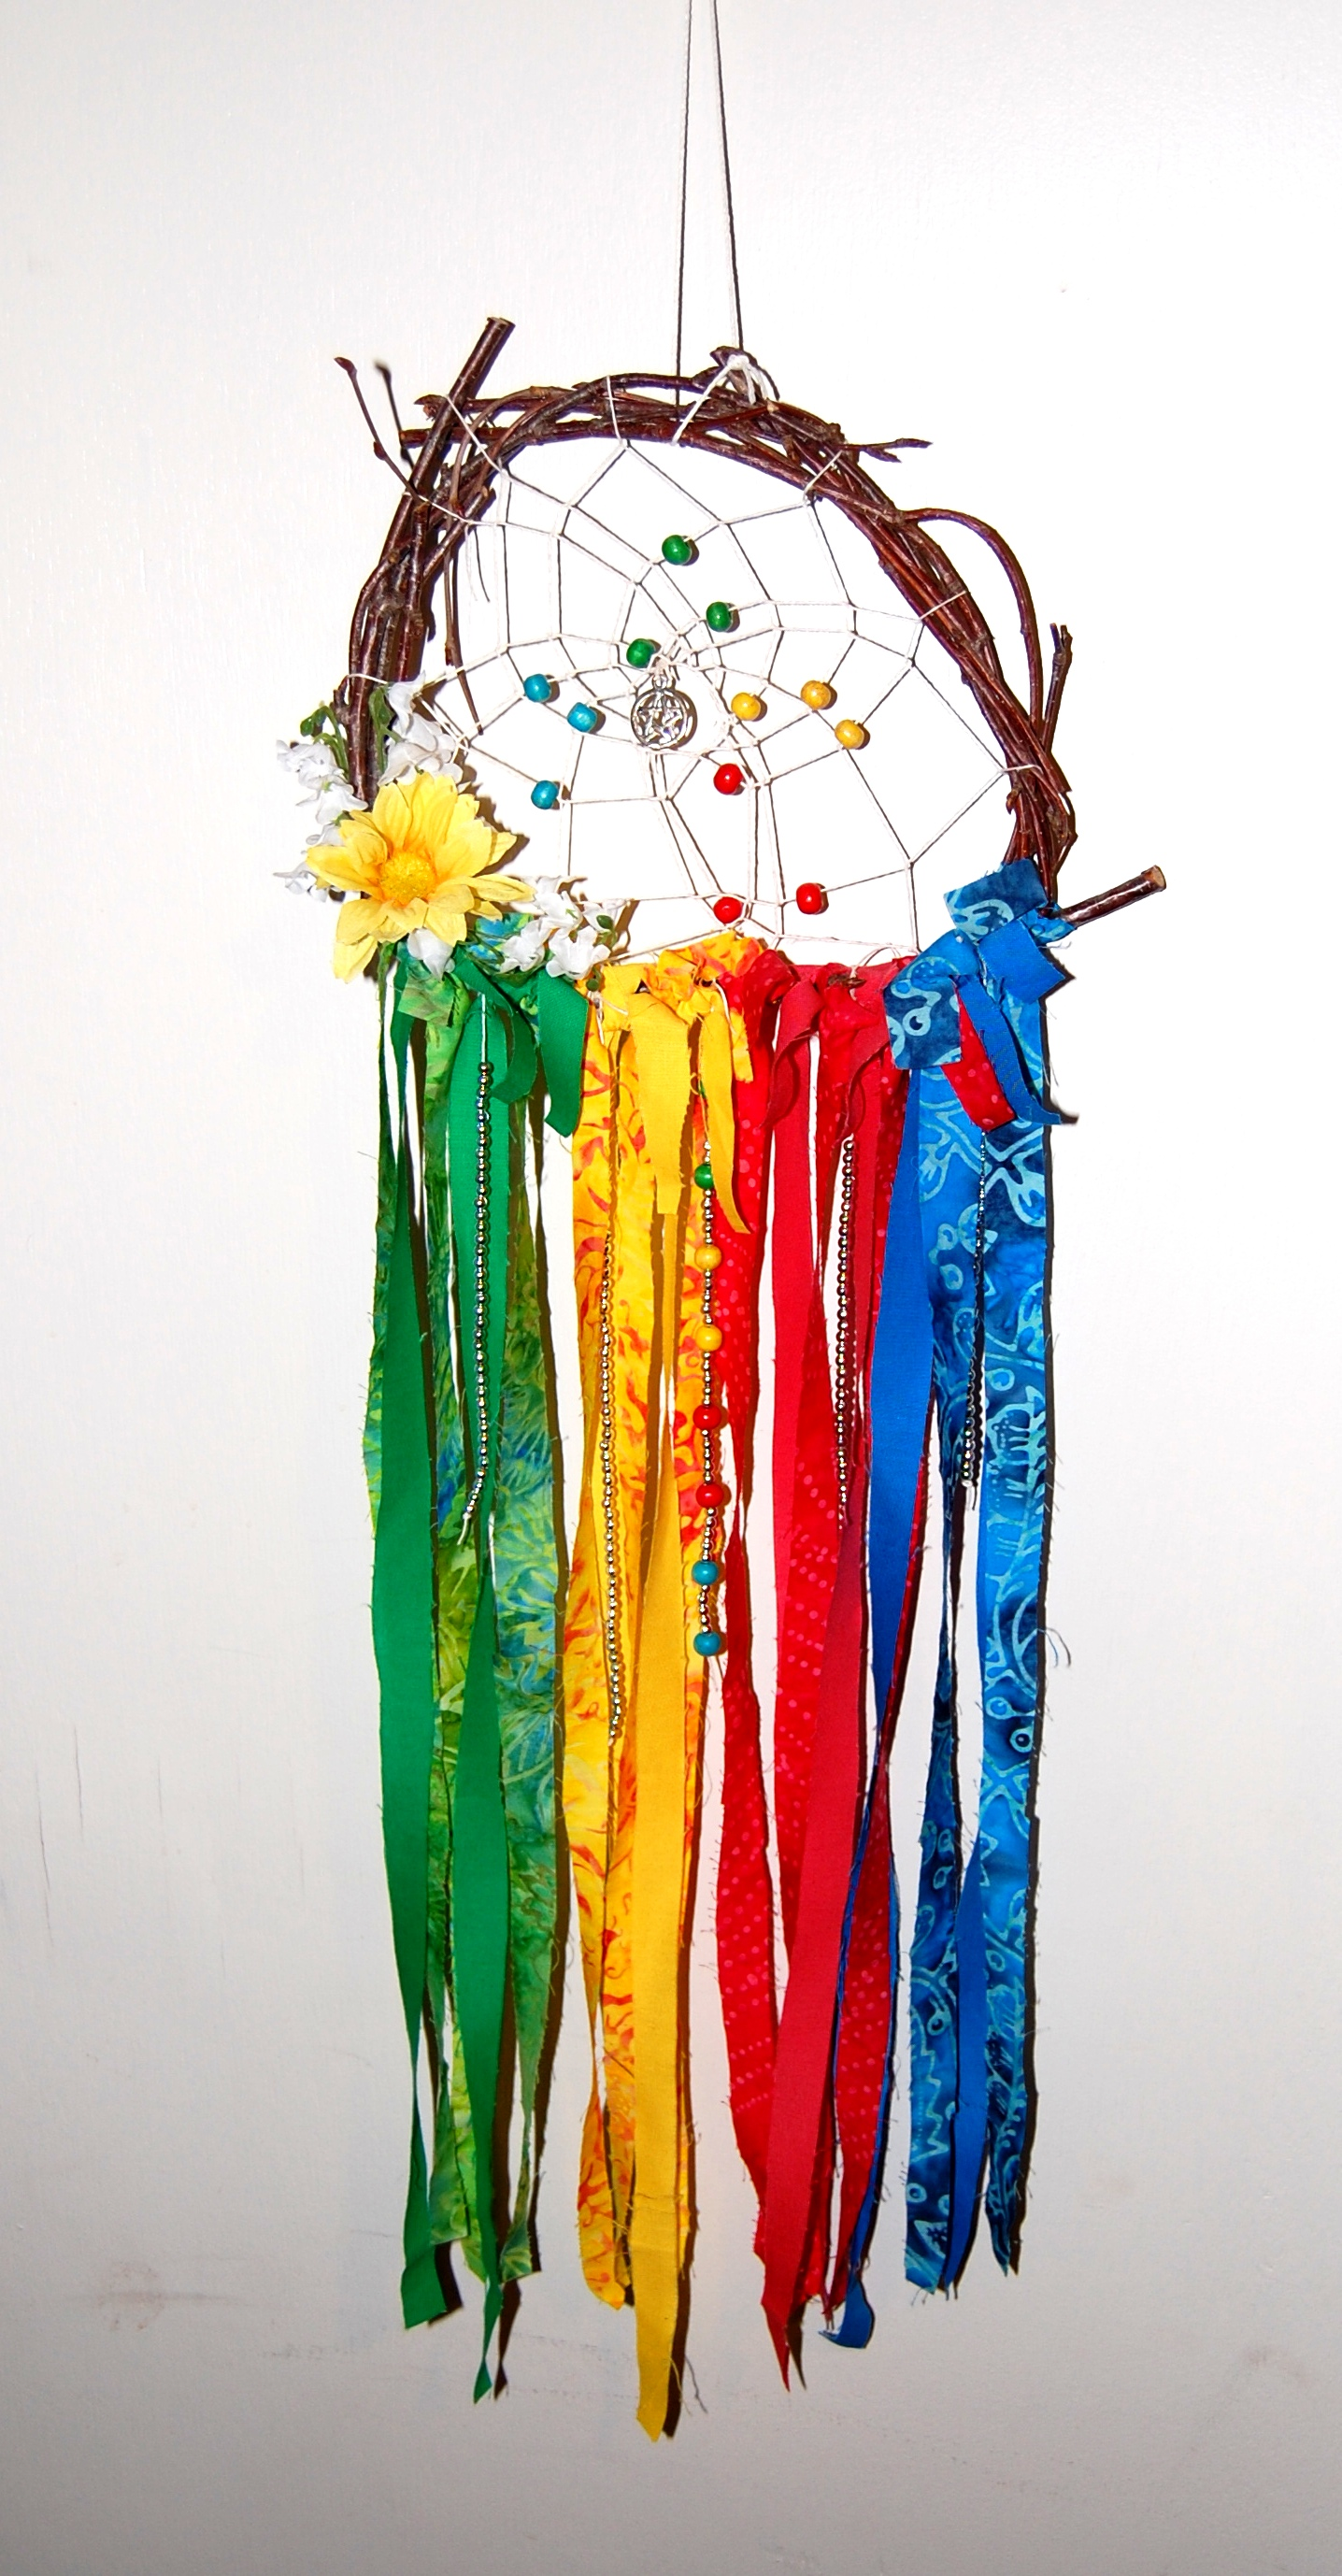 "- Dream Catcher ""Elemental"" Hand-made Twig Wreath With Bright Colors"